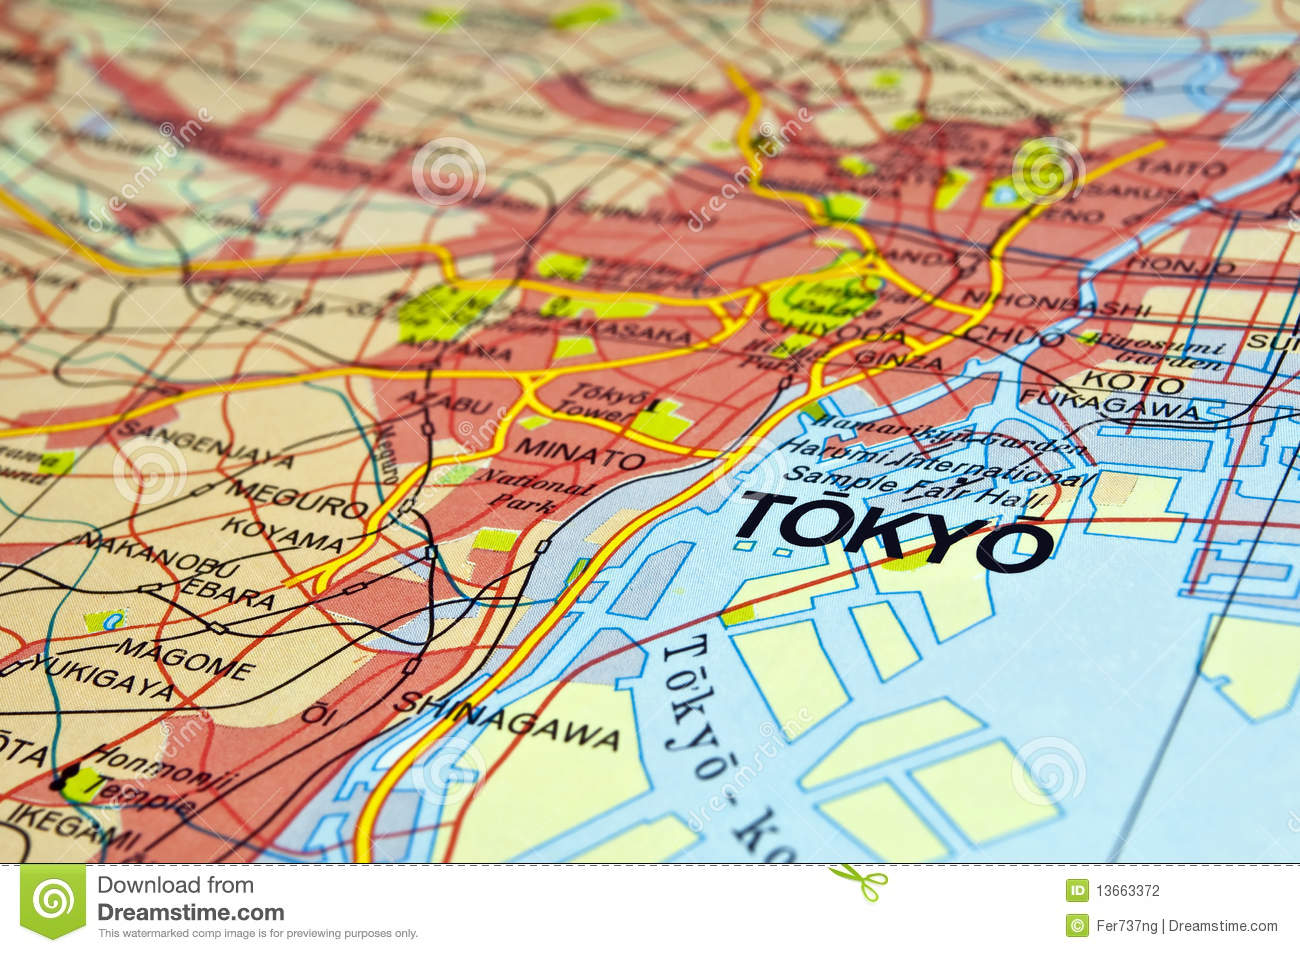 Tokyo map stock photo image of direction road discover 13663372 tokyo map gumiabroncs Choice Image